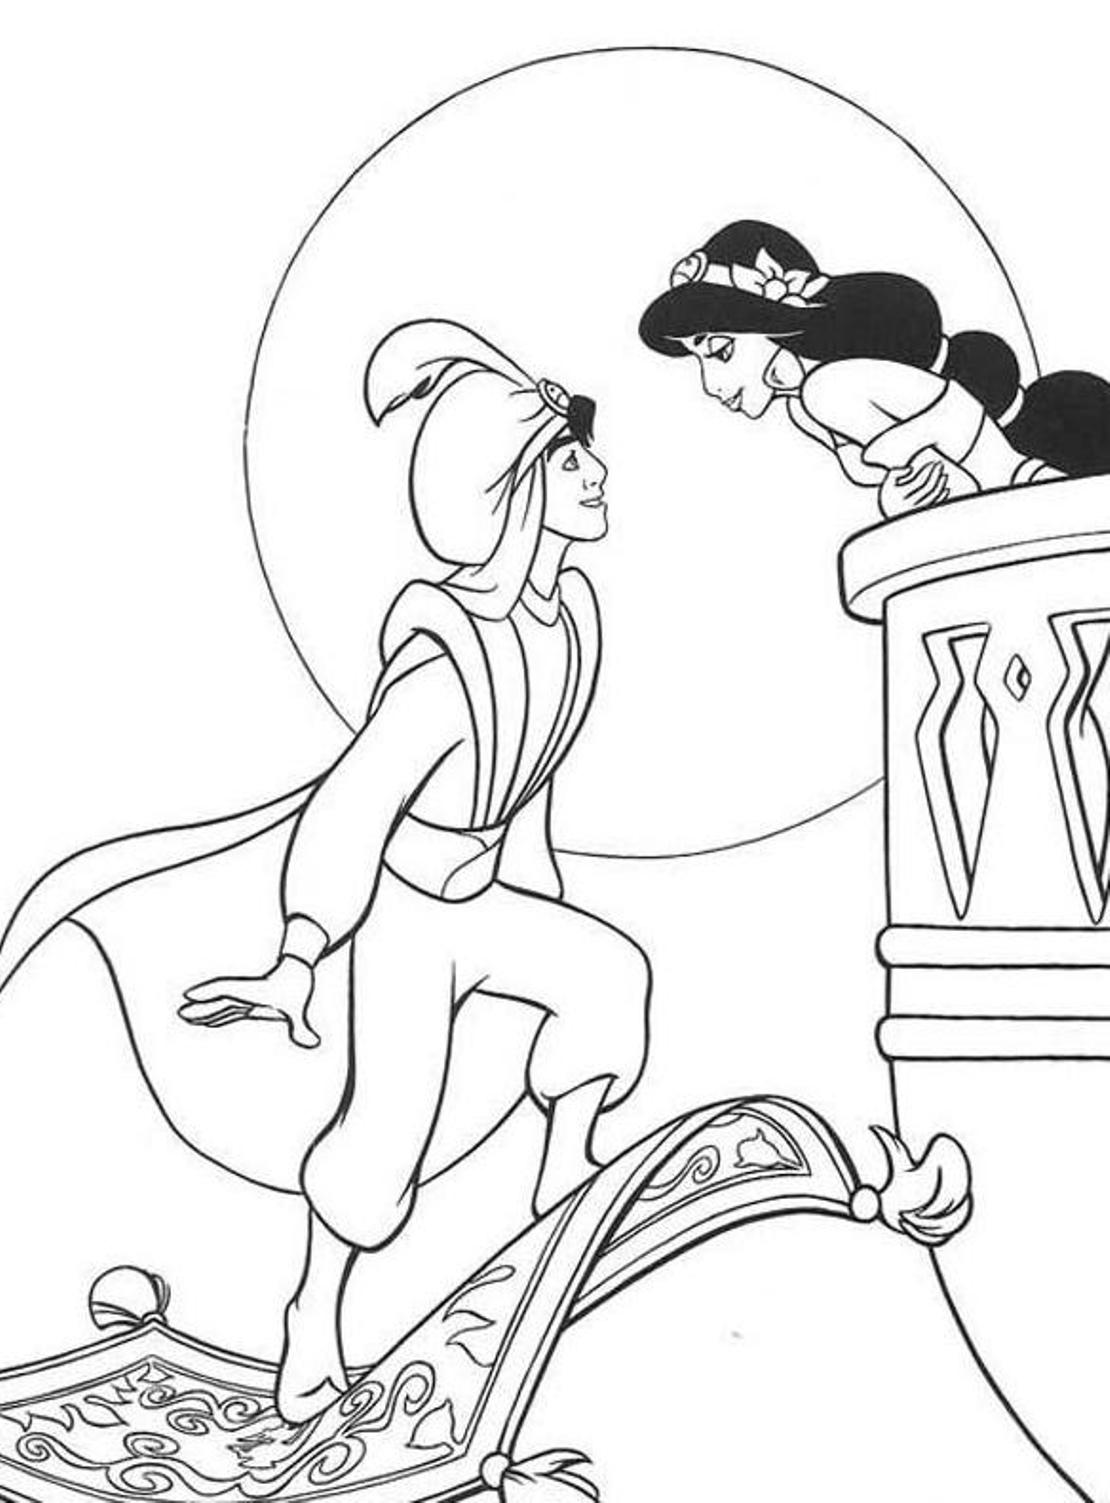 Aladdin_Coloring_Pages_04